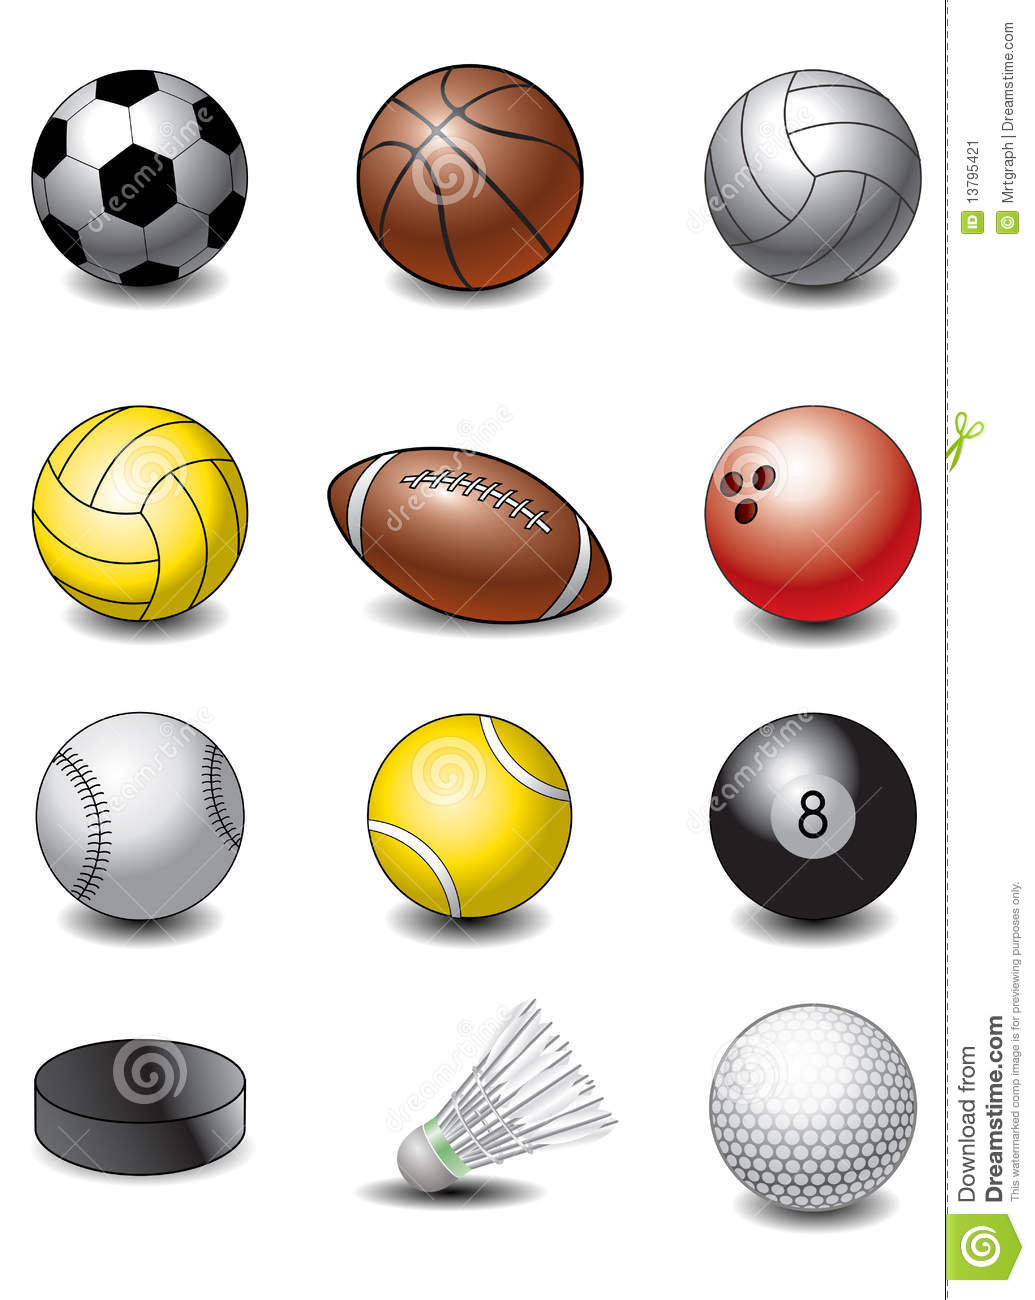 Balls played in various sports displayed together and on a white ...